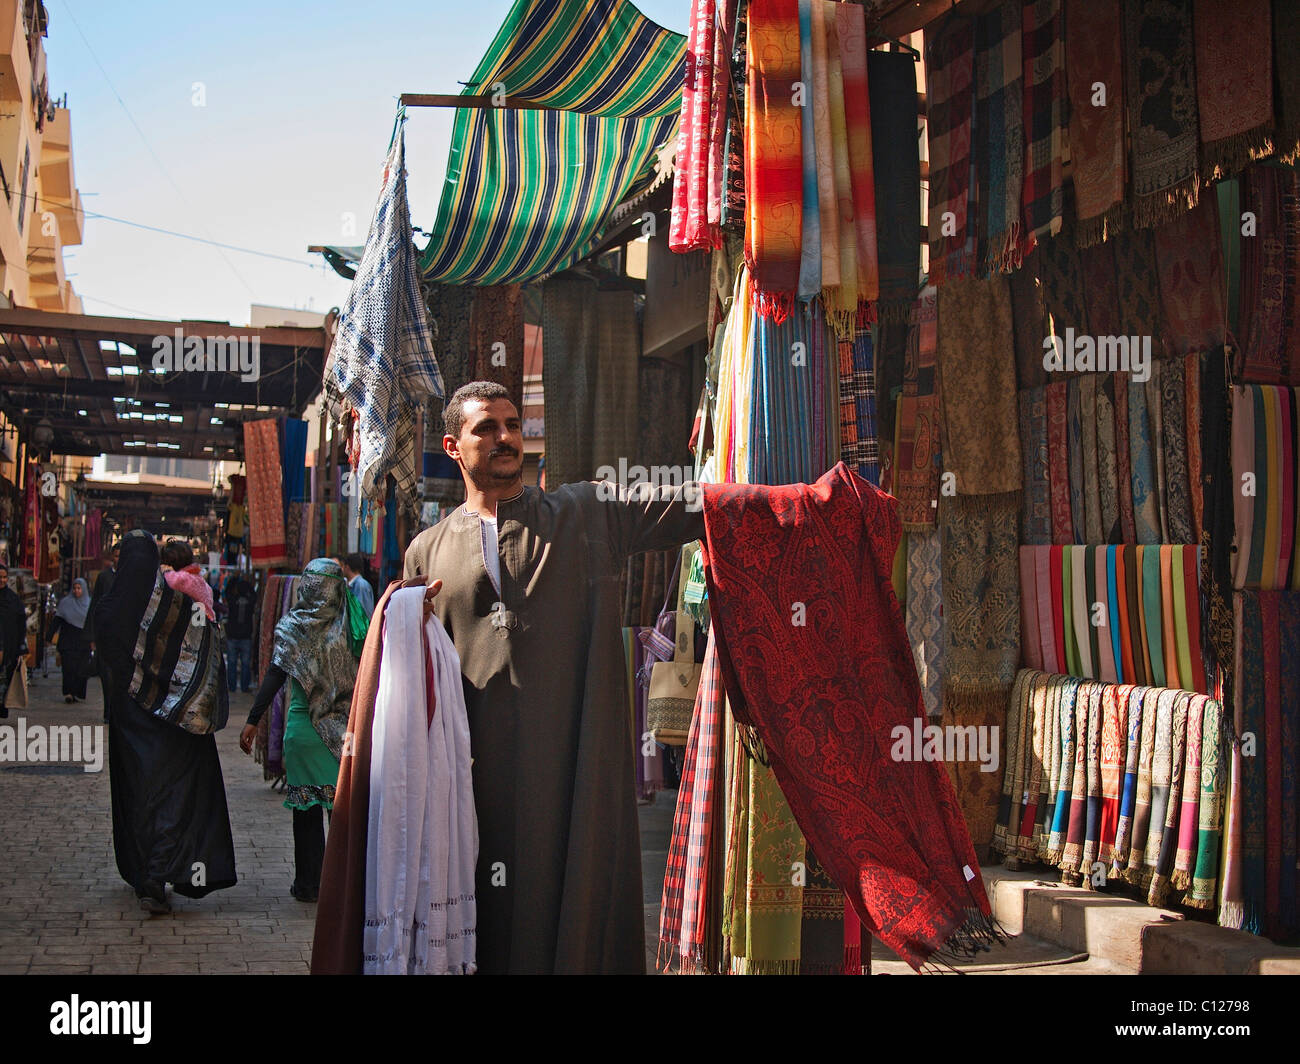 Cloth merchant in the souk of Luxor, Egypt, Africa - Stock Image